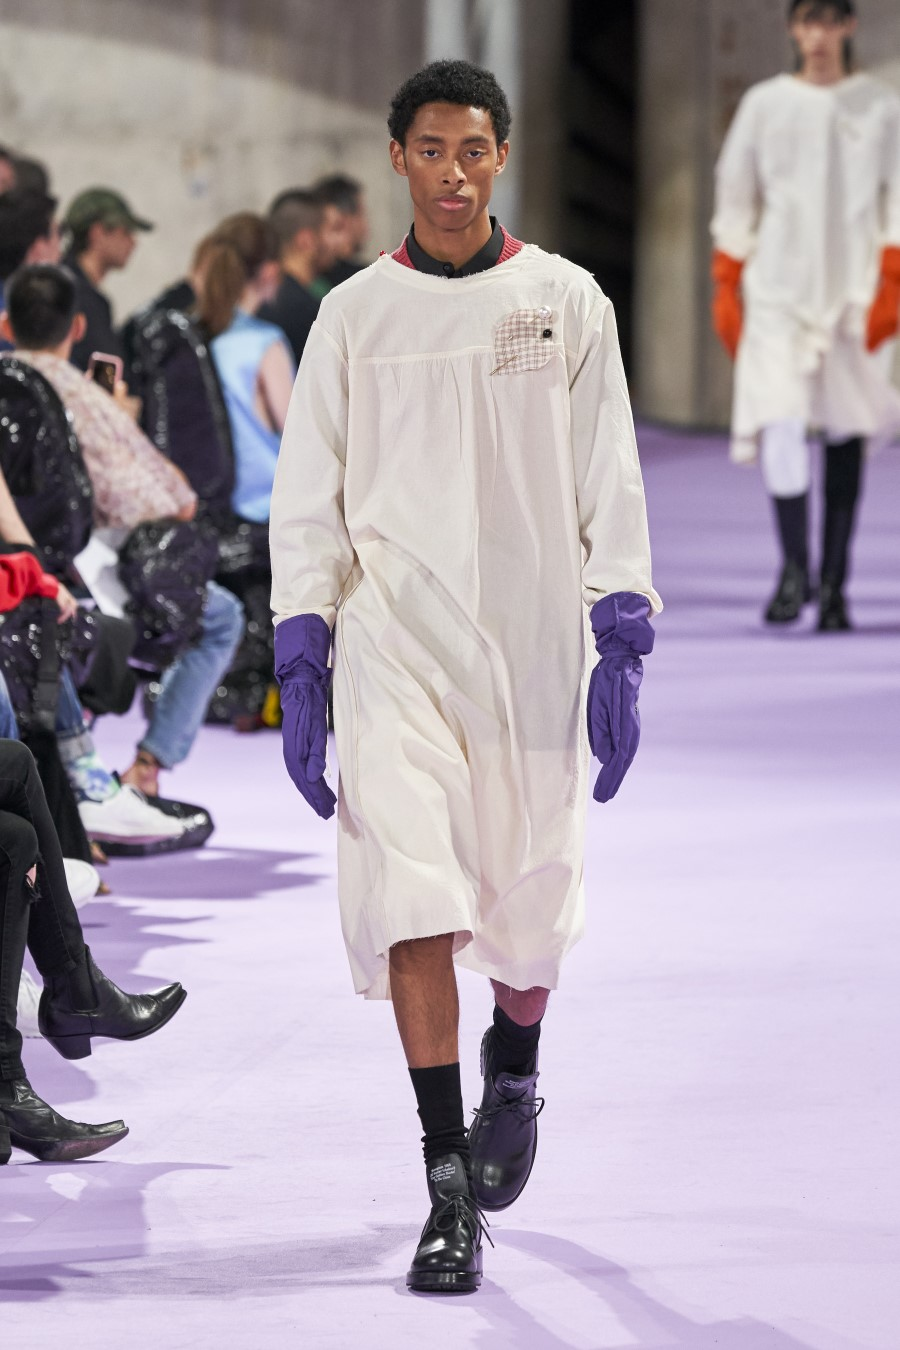 Raf Simons – Printemps/Été 2020 – Paris Fashion Week Homme